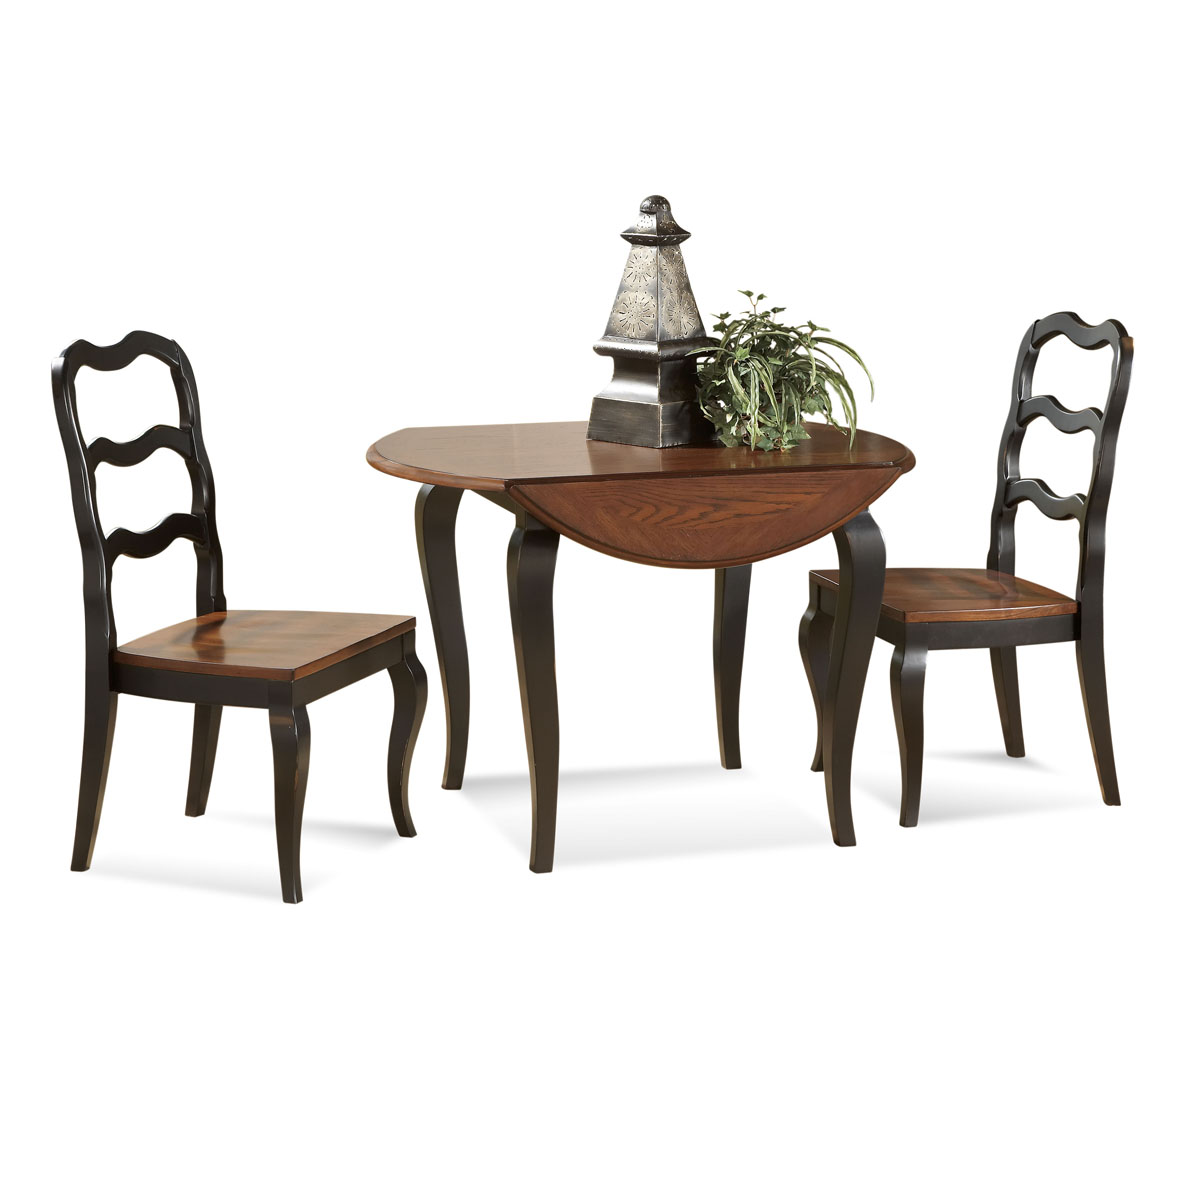 5 styles of drop leaf dining table for small spaces for Dining table space